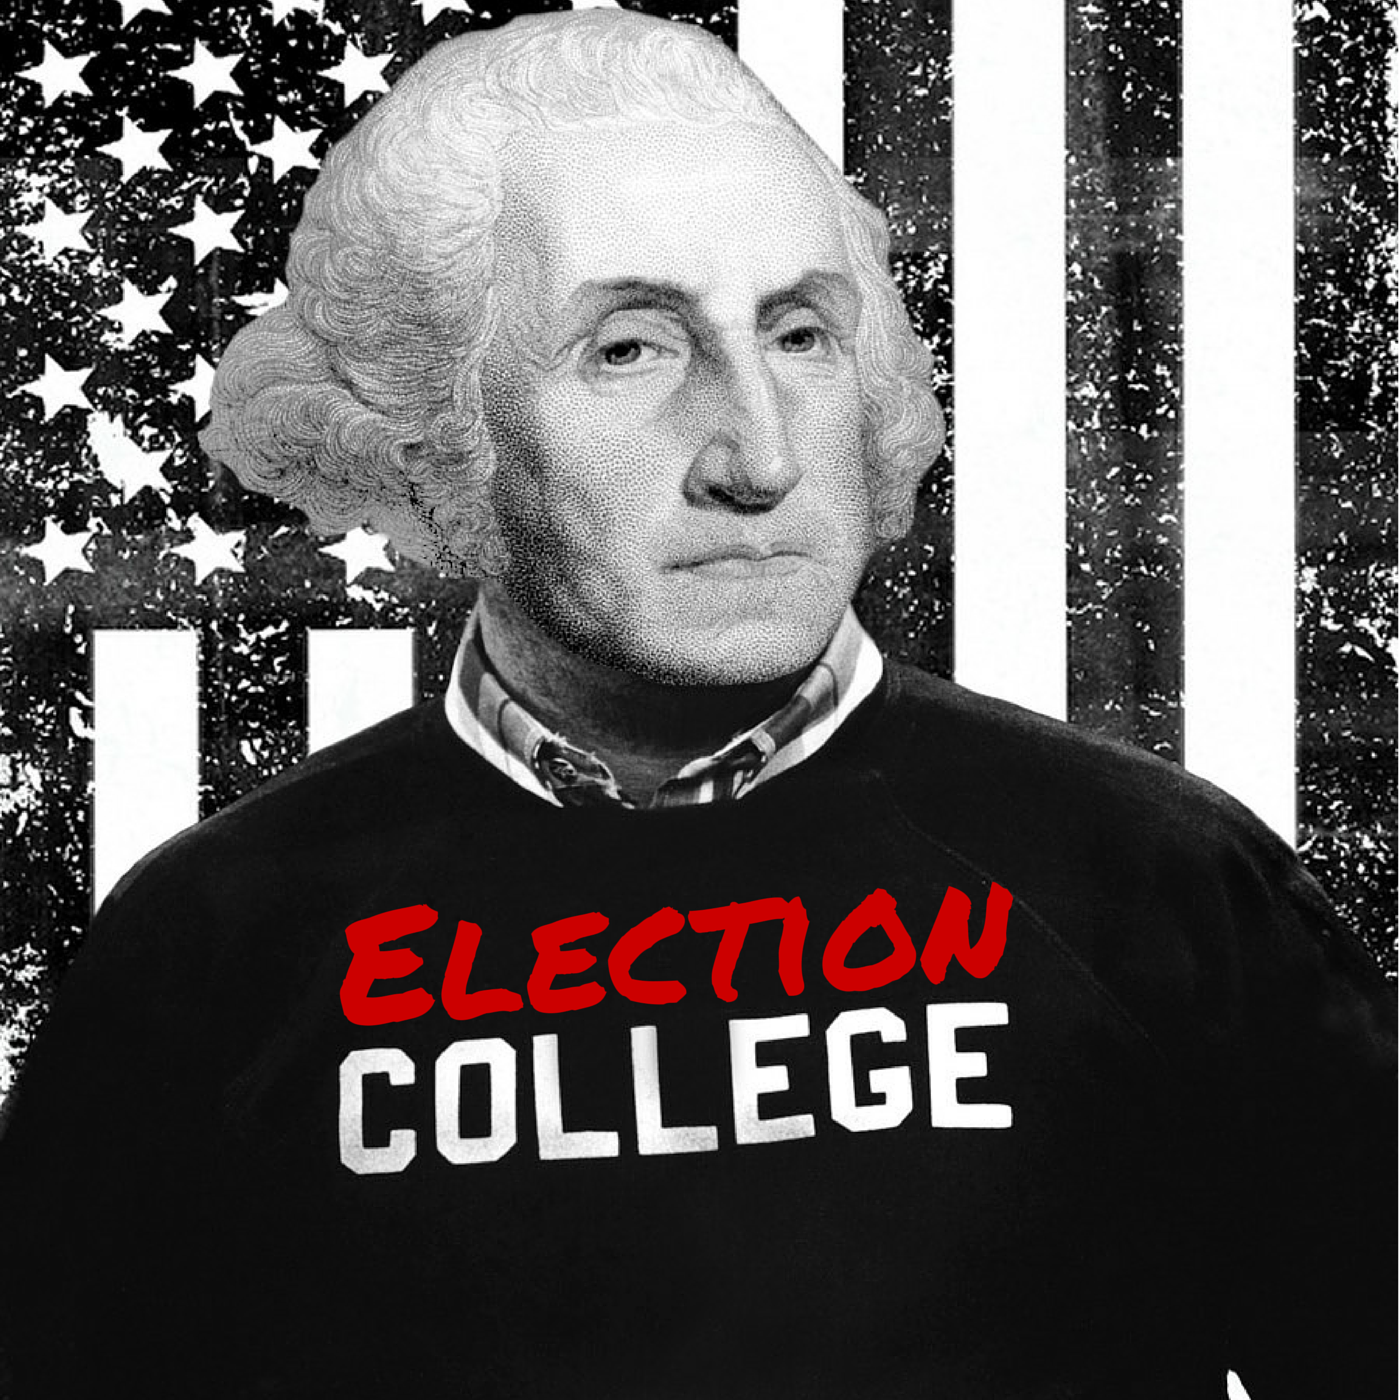 William McKinley - Part 2 | Episode #261 | Election College: United States Presidential Election History